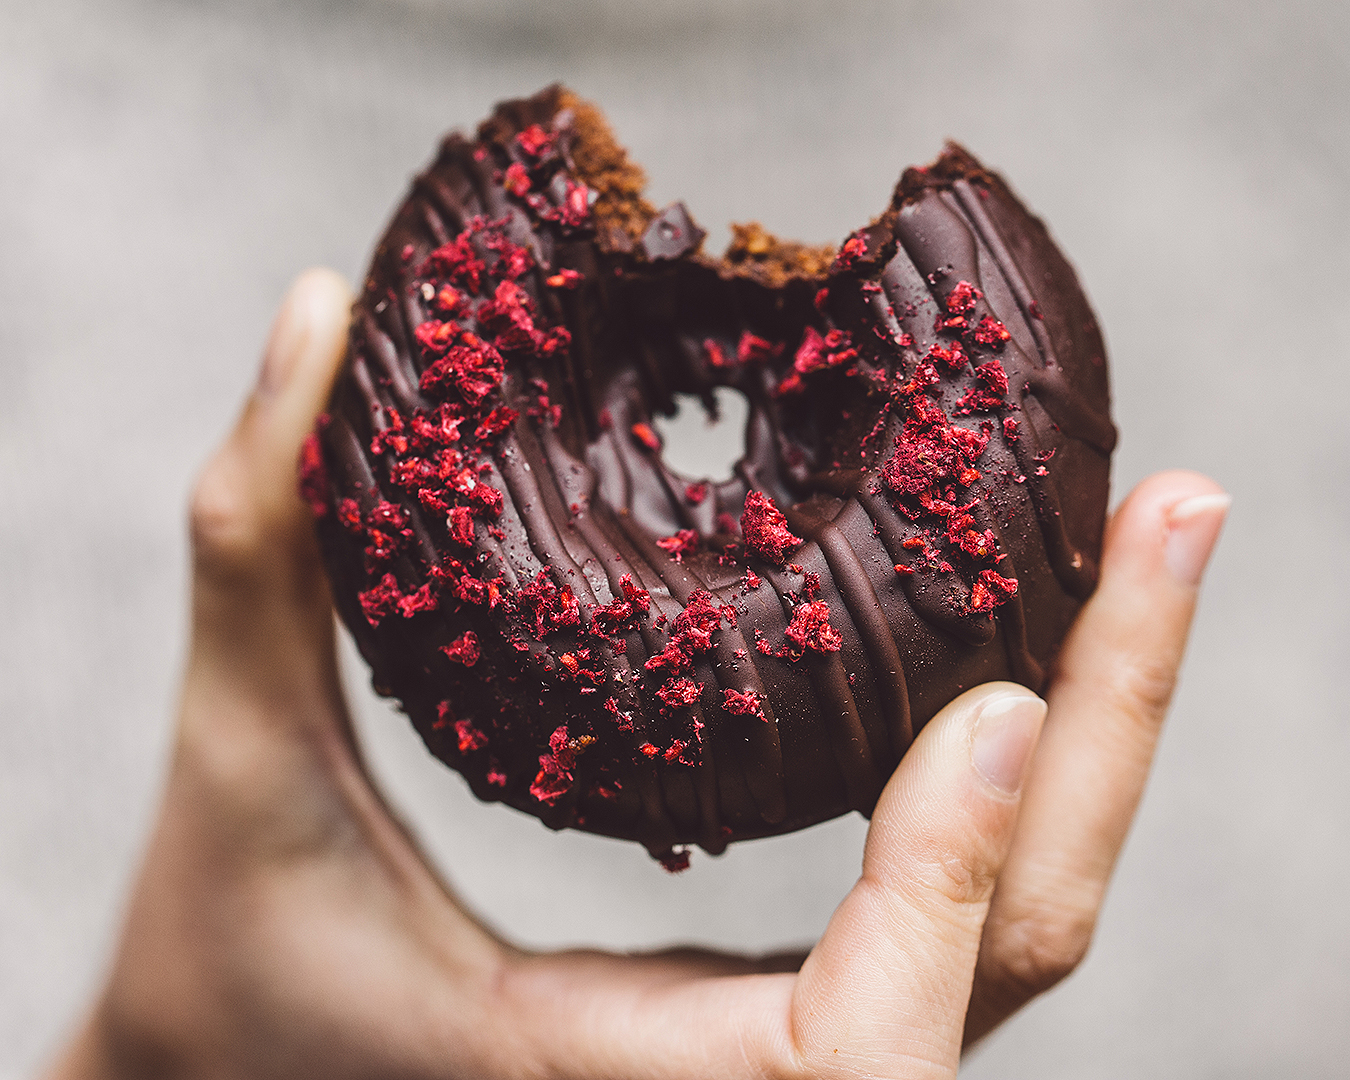 A delicious chocolate donut from Little Bird Organics